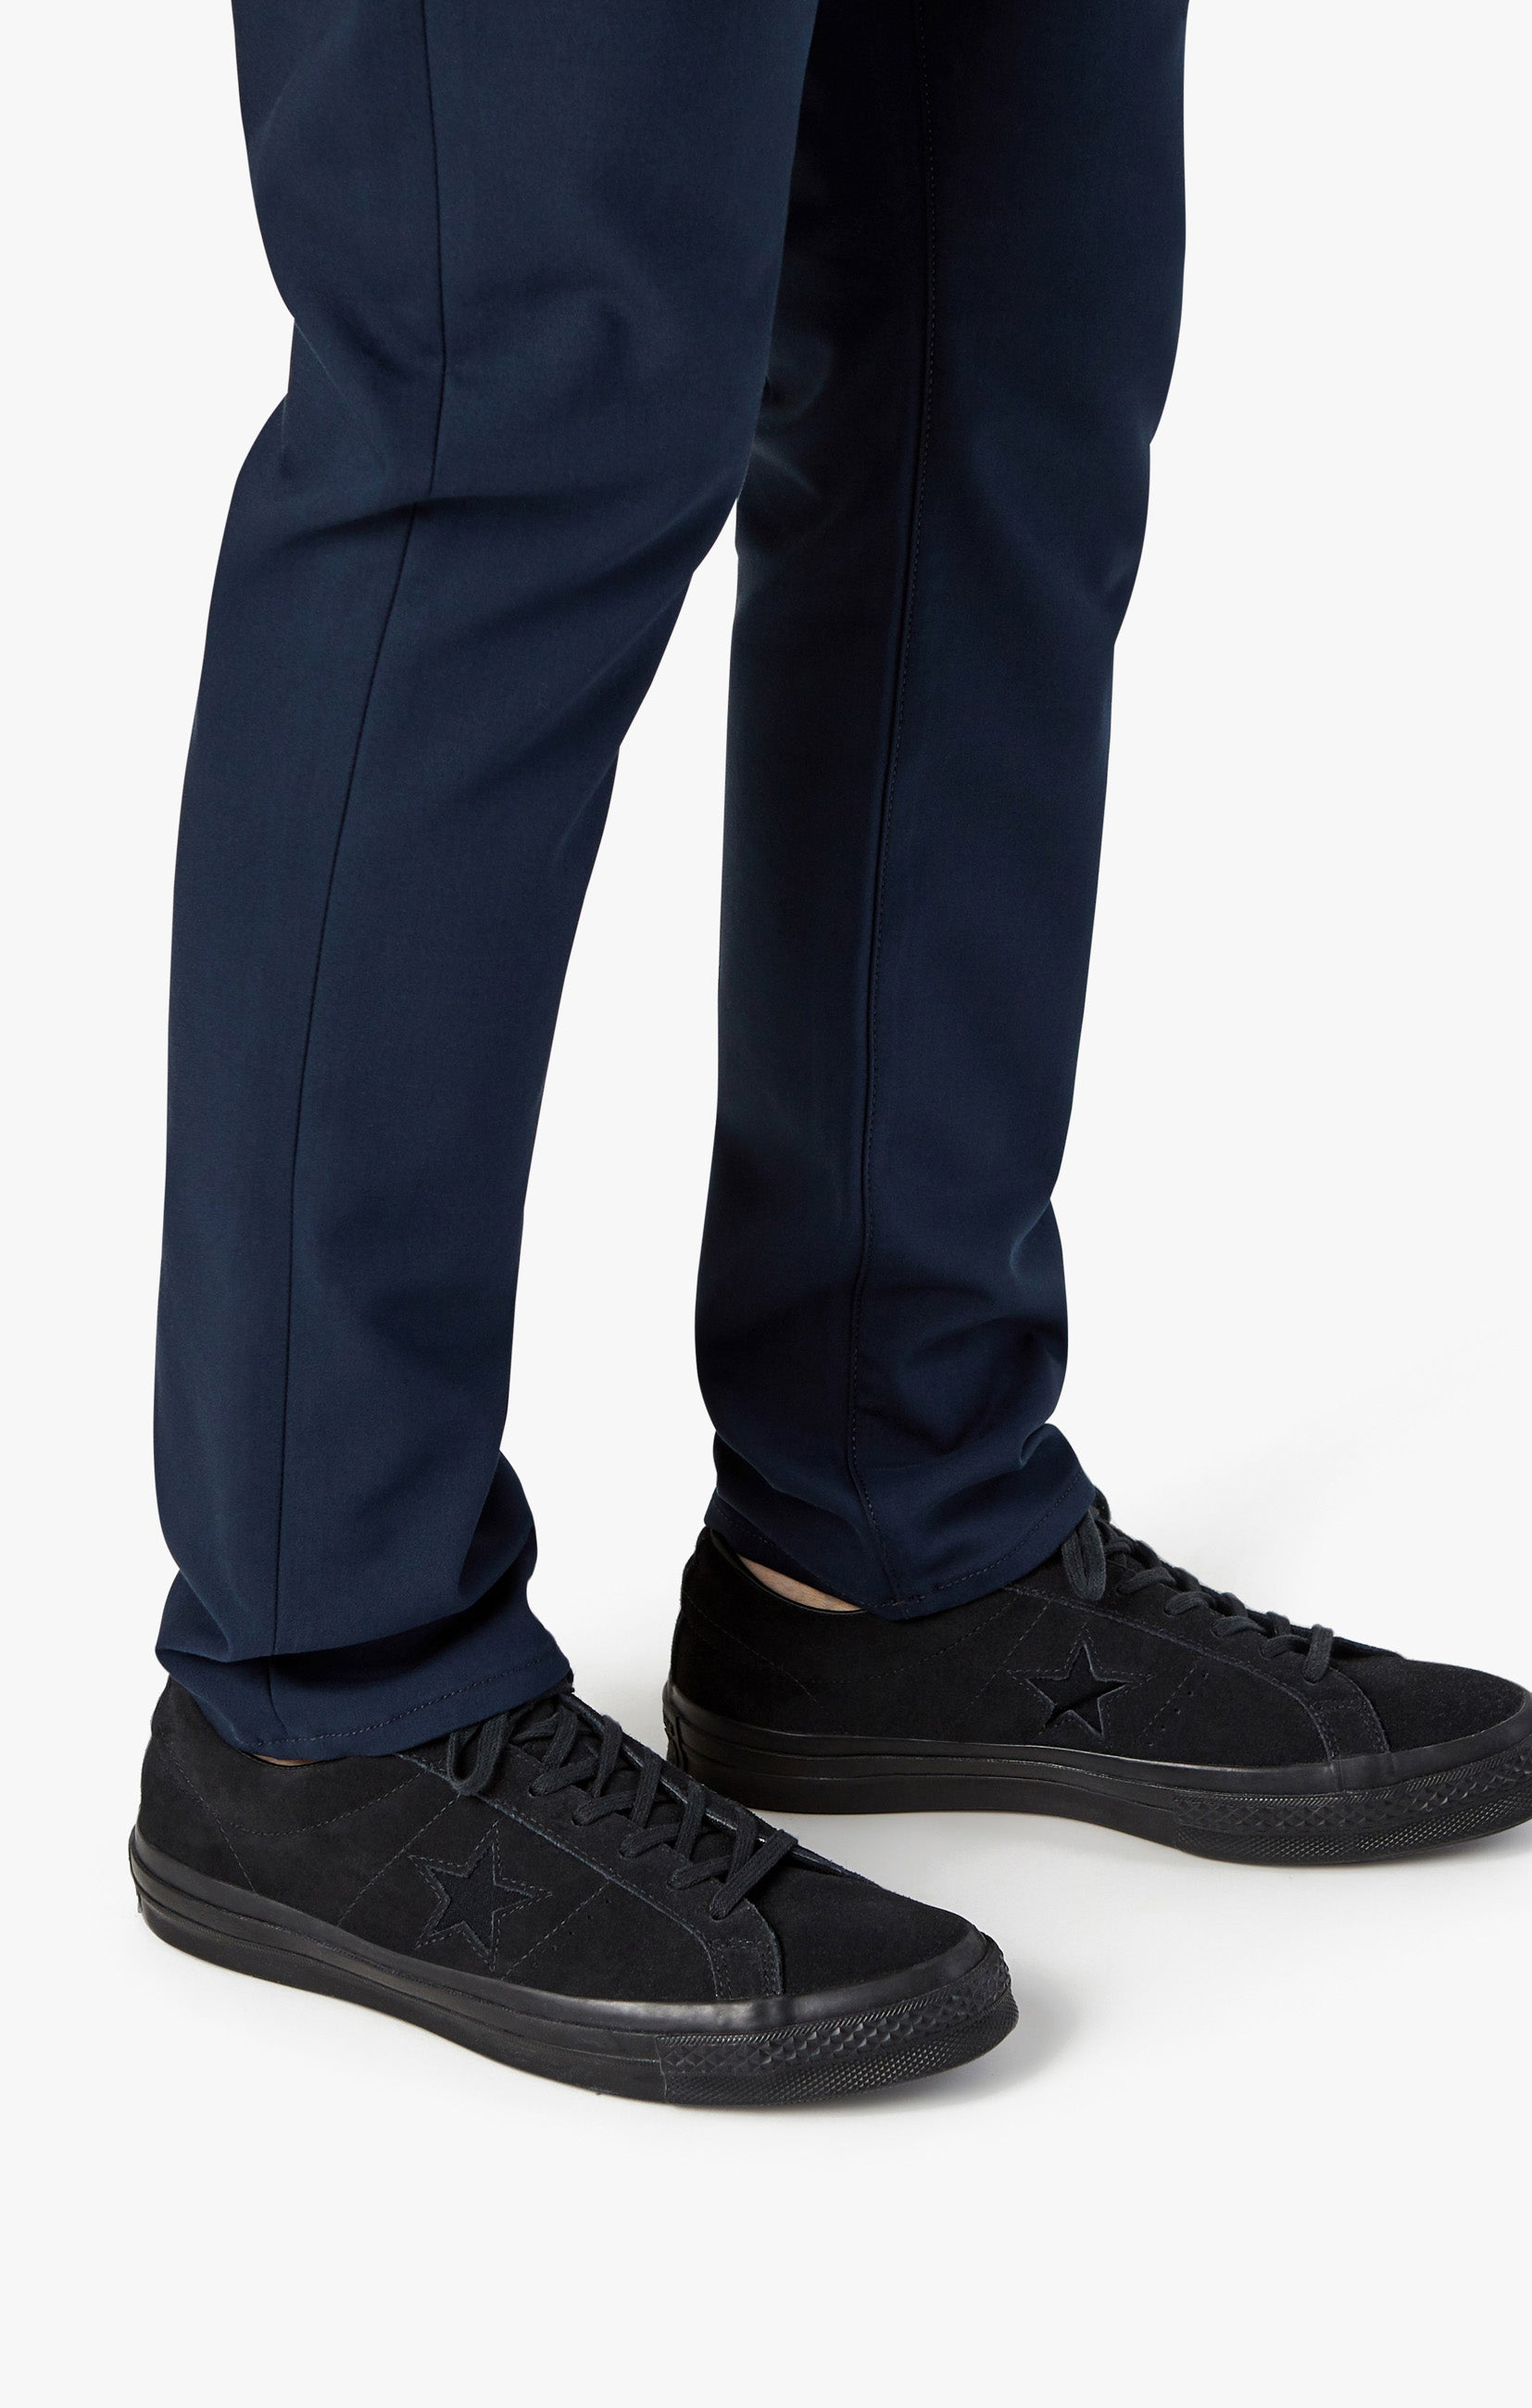 Courage Straight Leg Pants in Navy Commuter Image 7